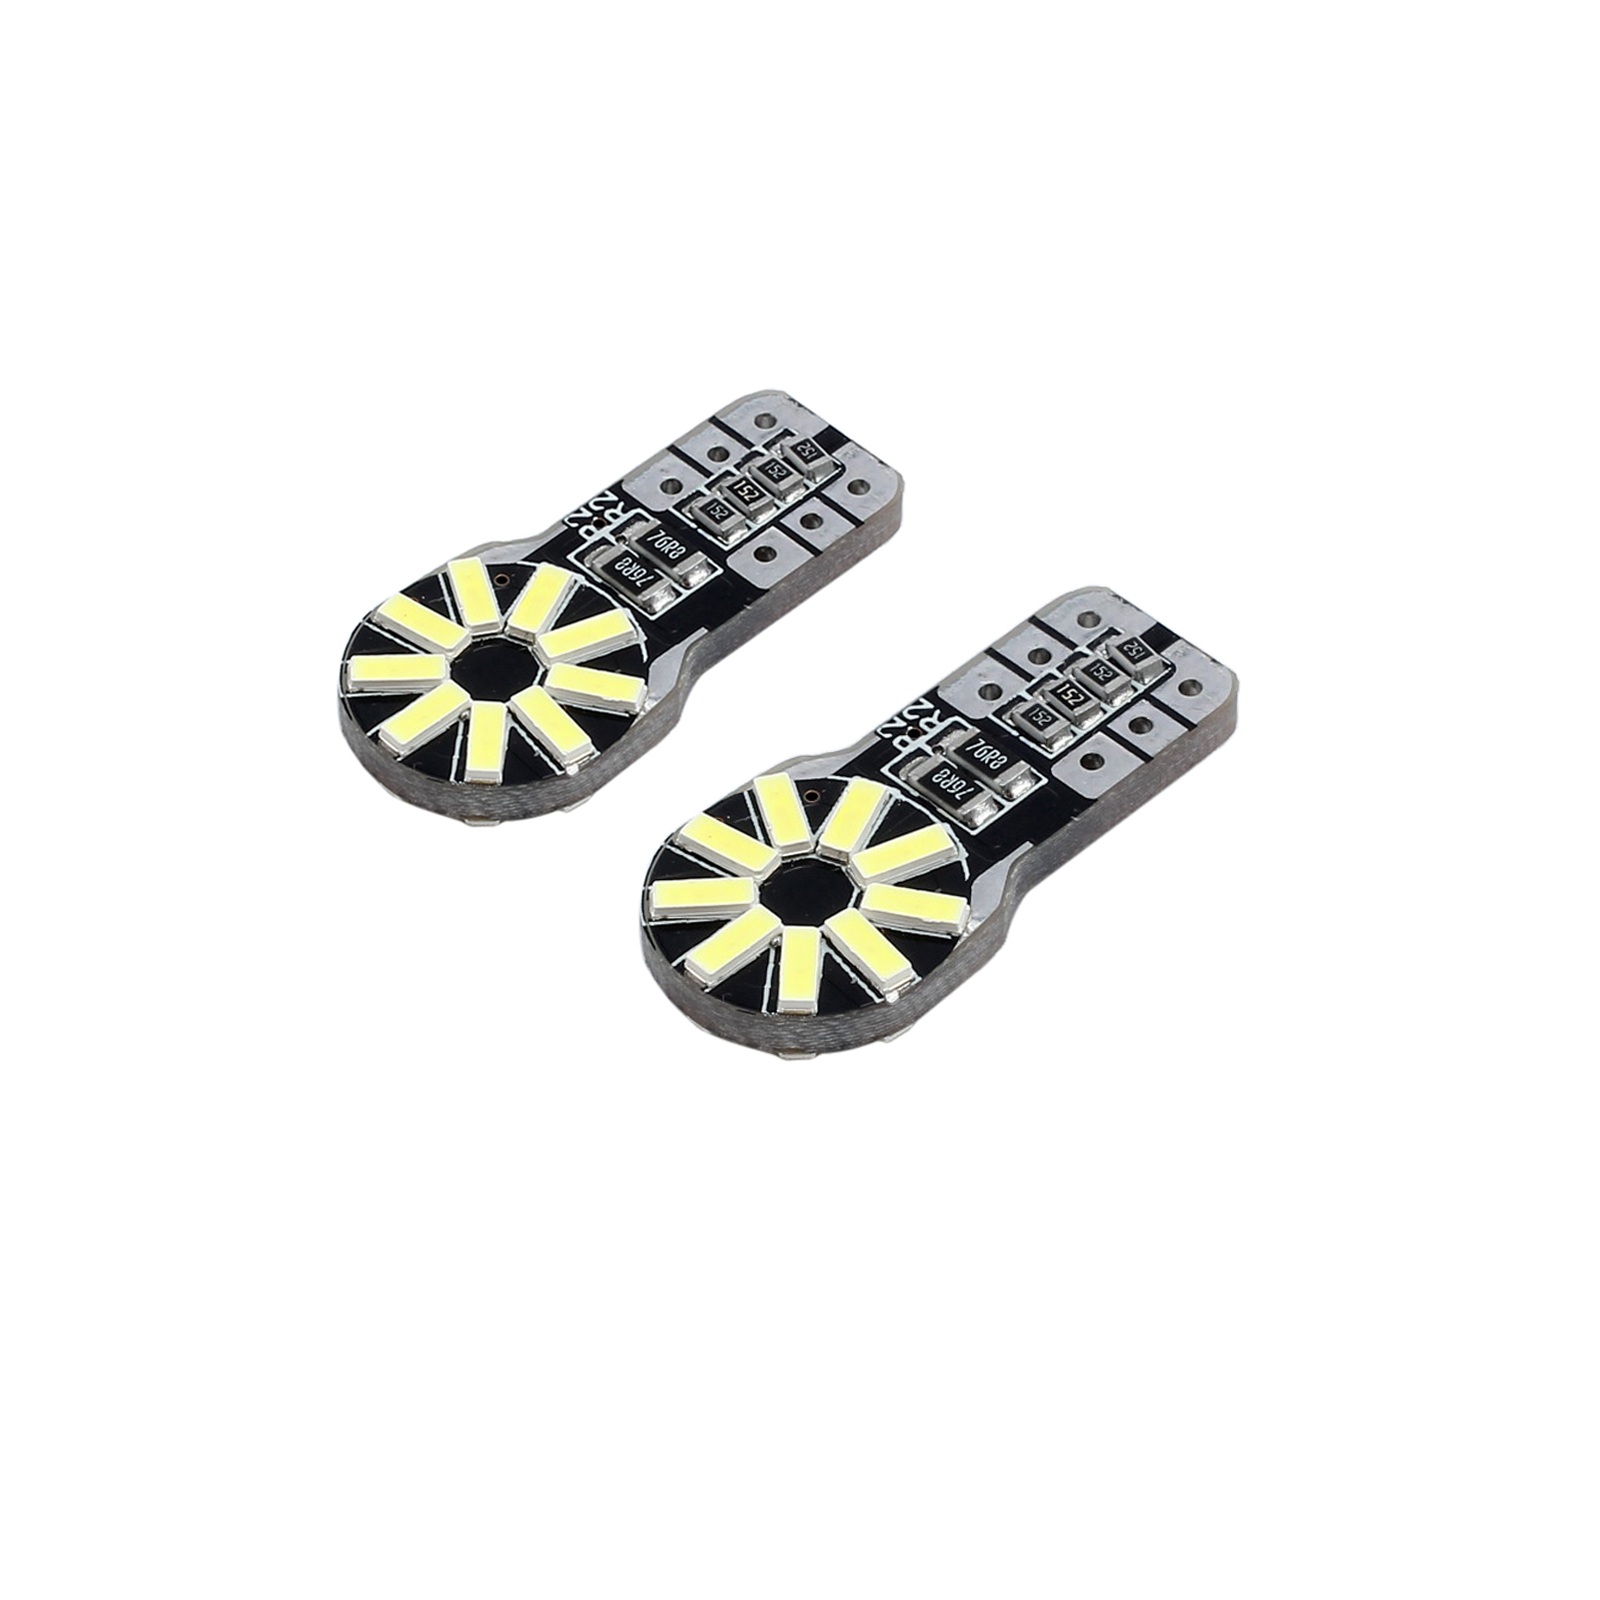 2x T10 501 W5w 194 Wedge Canbus Bulbs 18 Led Smd Bright